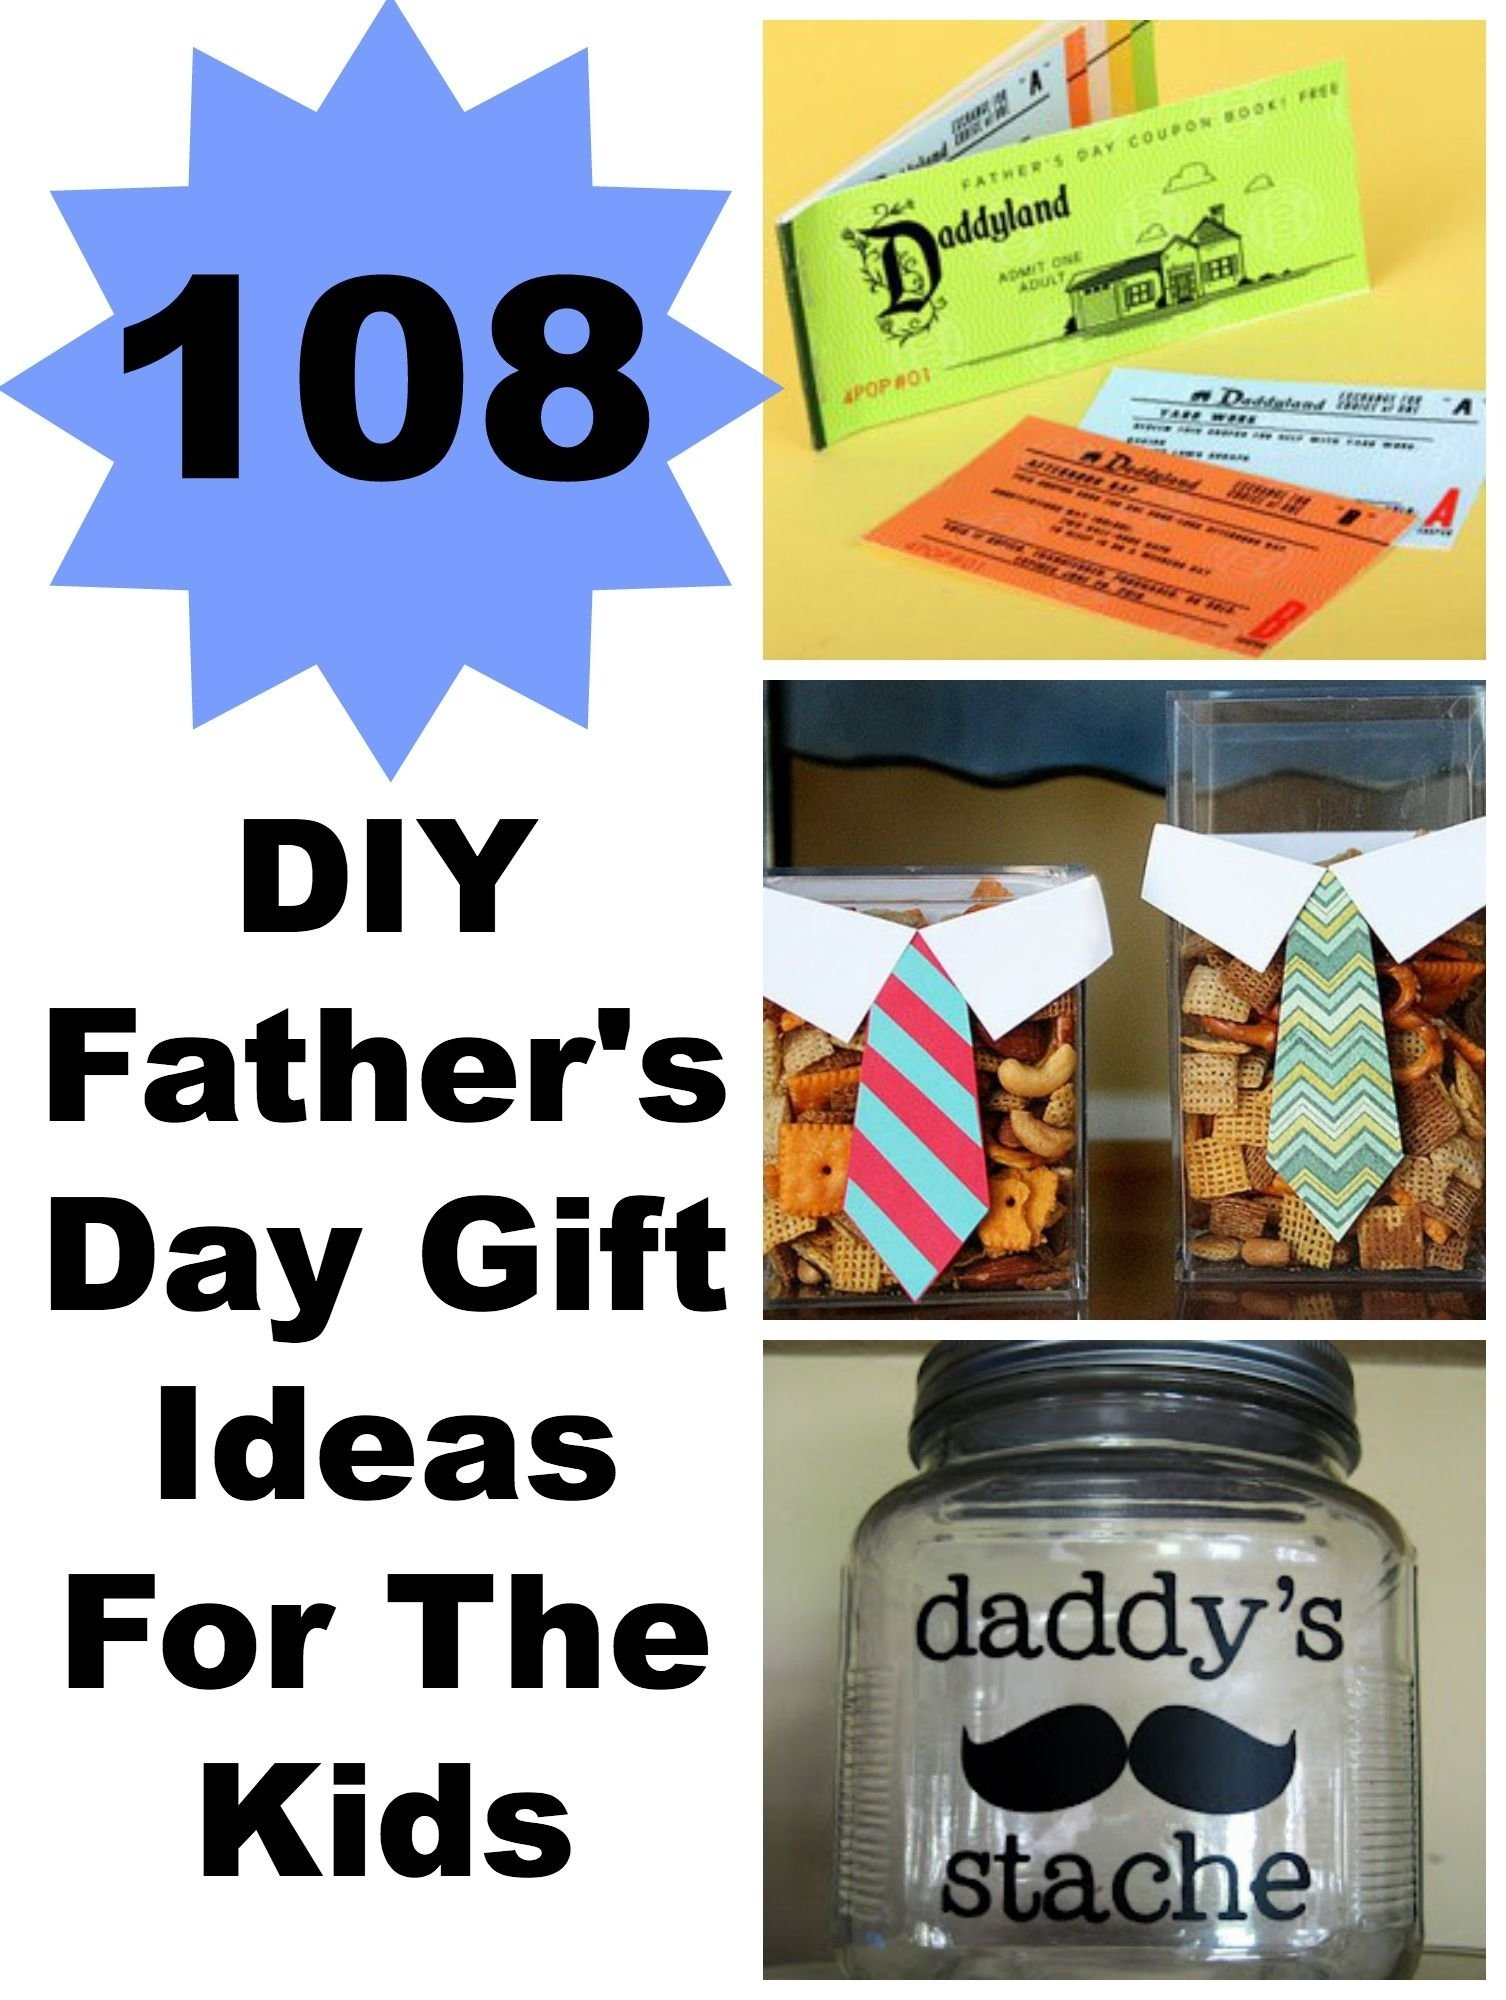 108 diy father's day gift ideas for the kids | easy diy projects